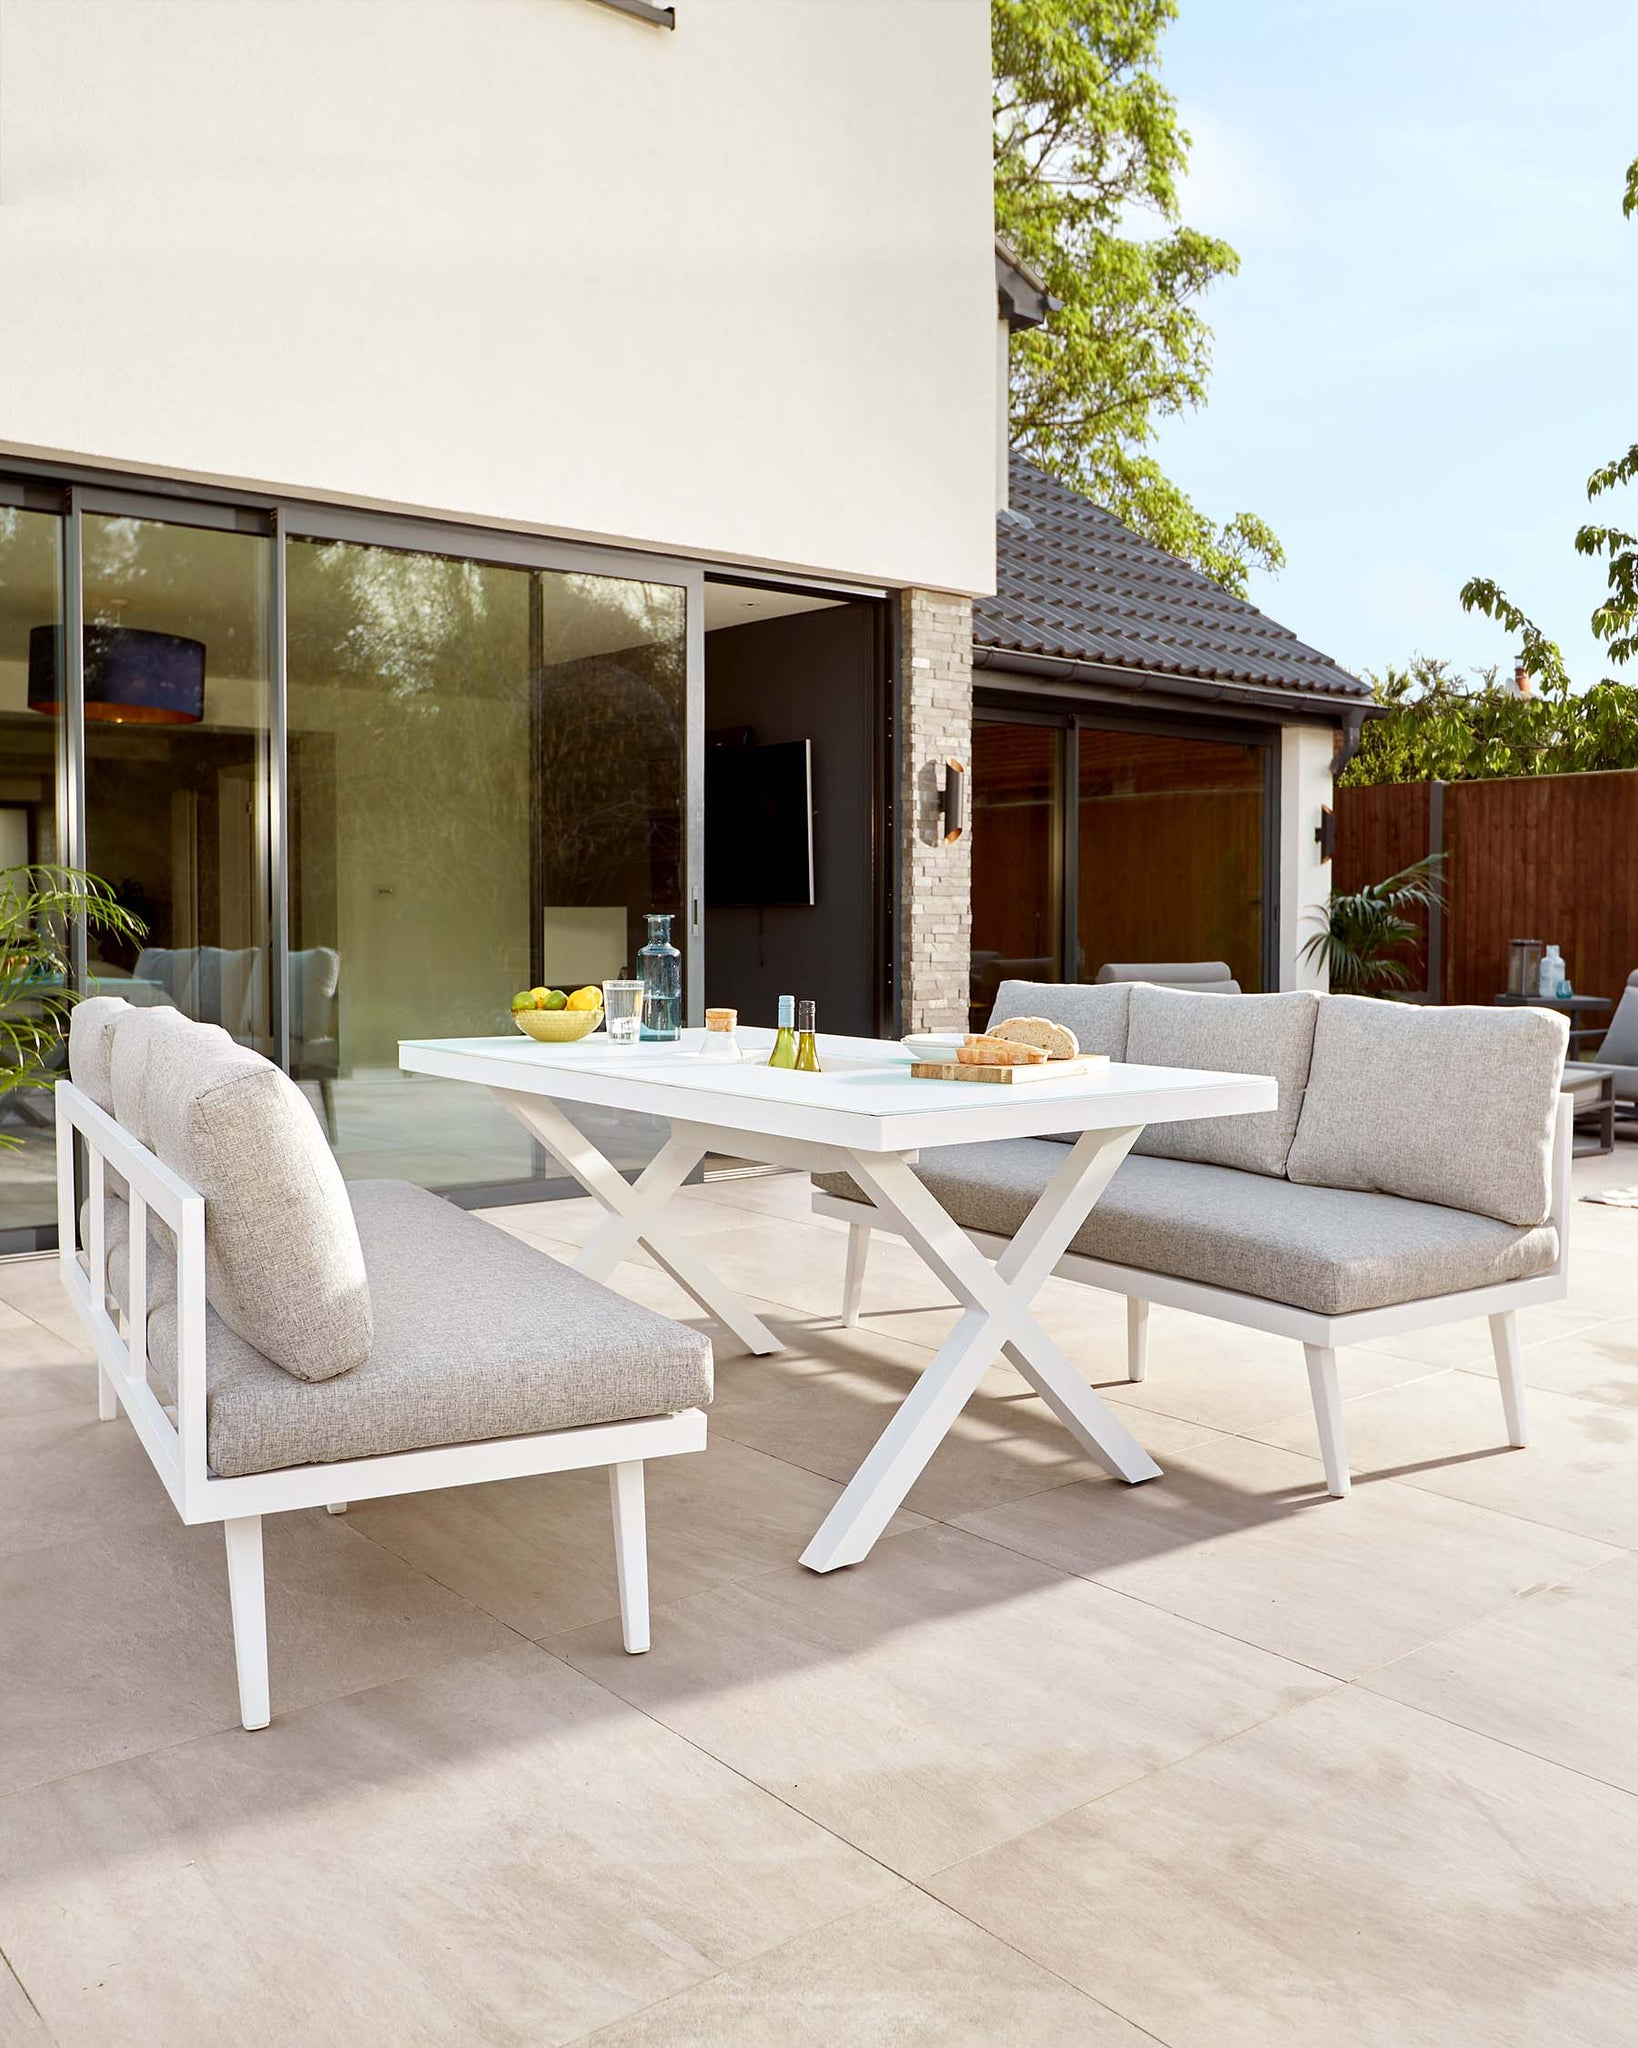 Rio White 6 Seater Dining Table and Bench Outdoor Dining Set